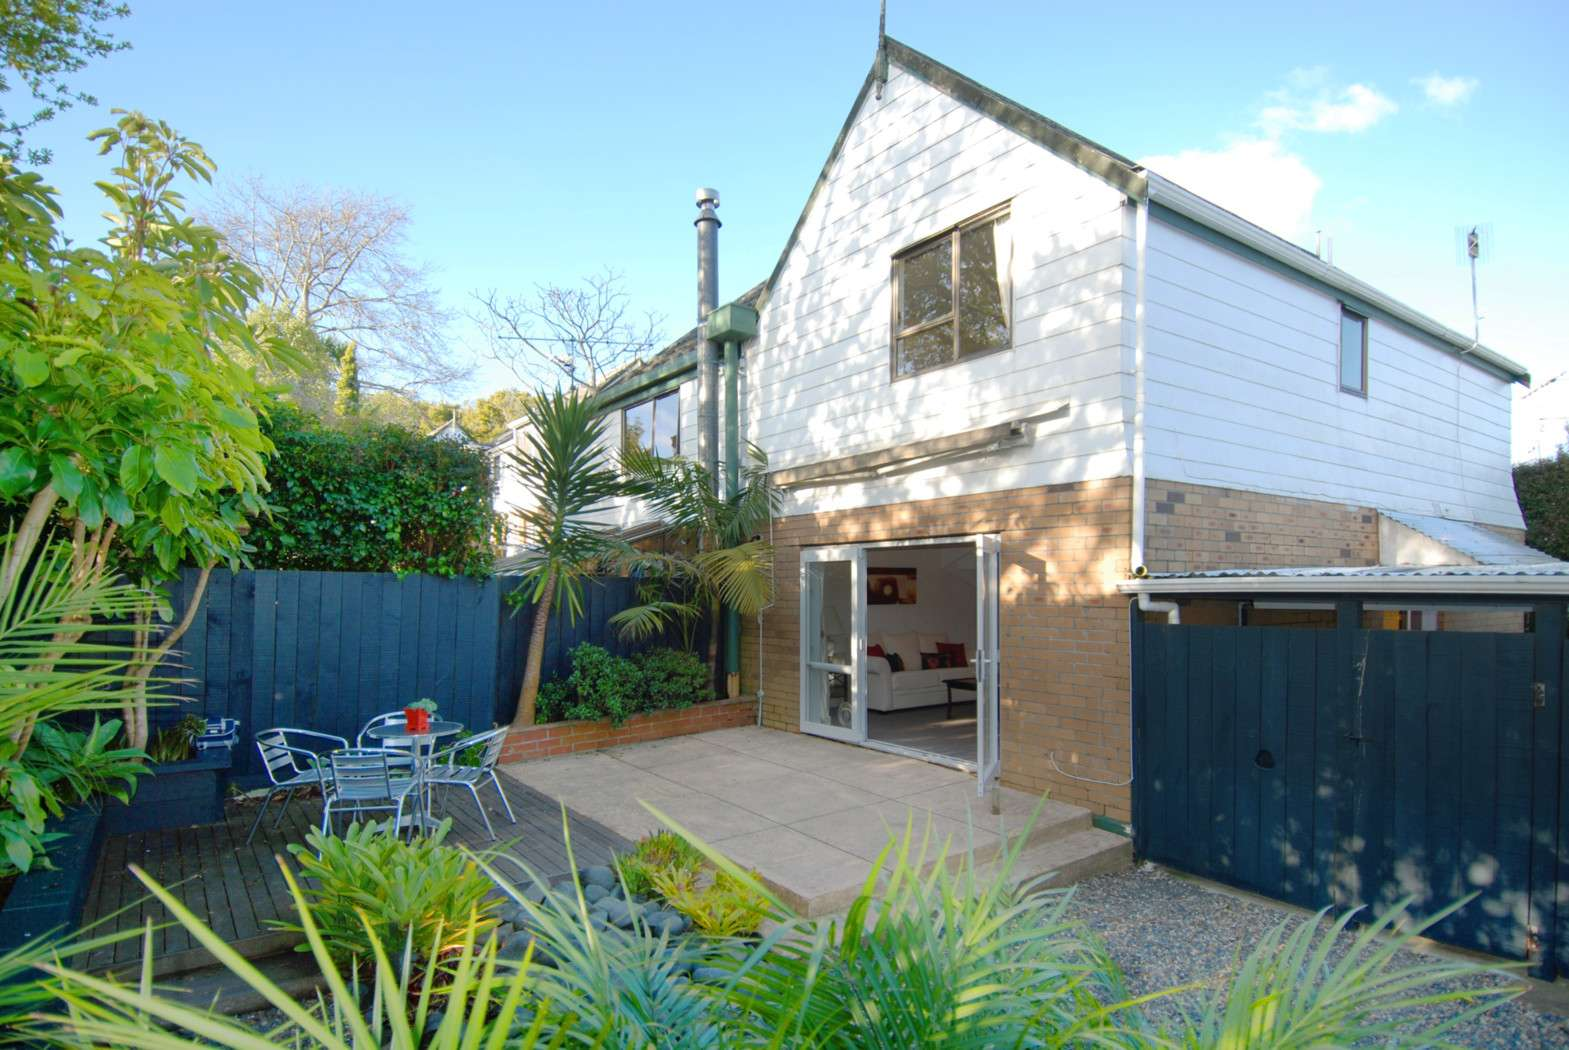 4/167 St Johns Road, Meadowbank, Auckland City 1072